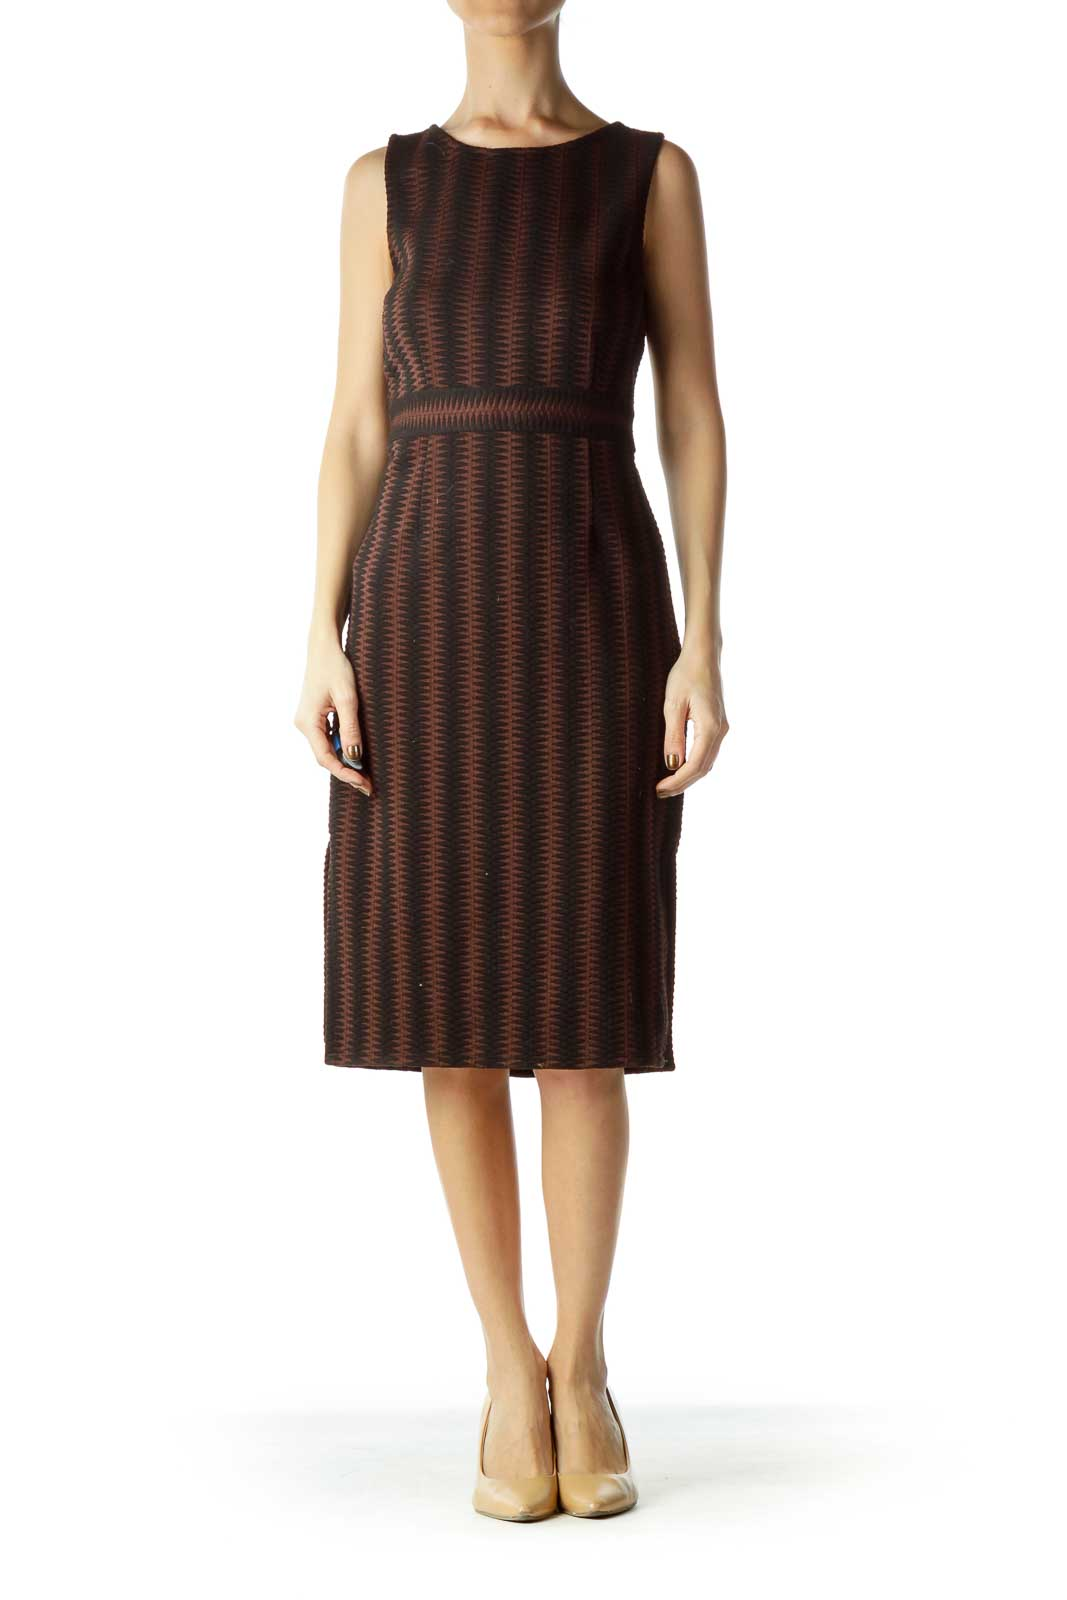 Black Brown Zig-zagged A-Line Work Dress